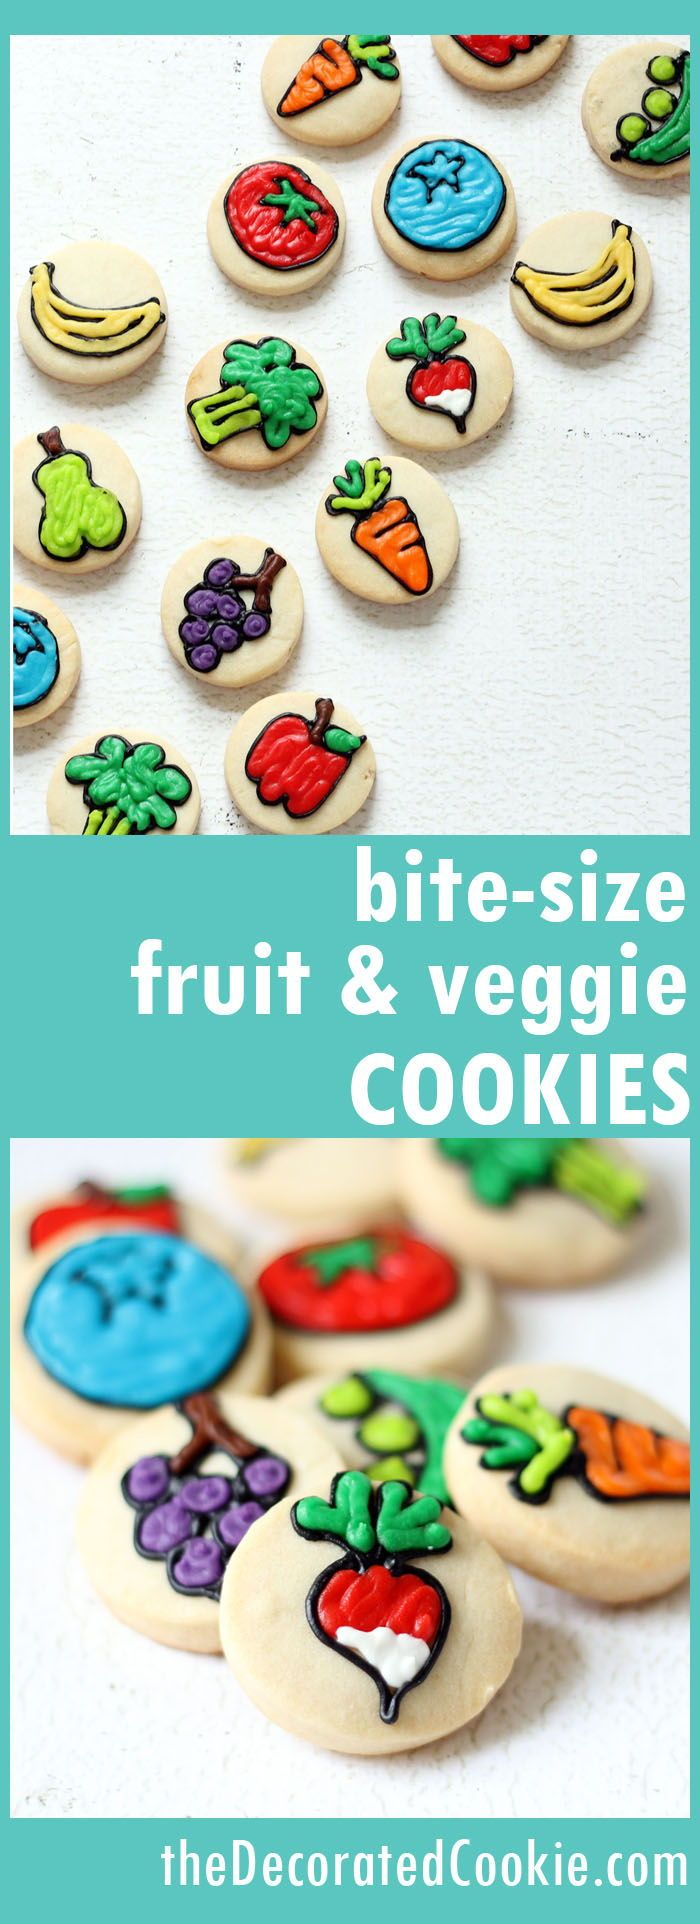 Bite-size fruit and vegetable cookies, a fun treat for spring or a fun food idea for a Garden Party.